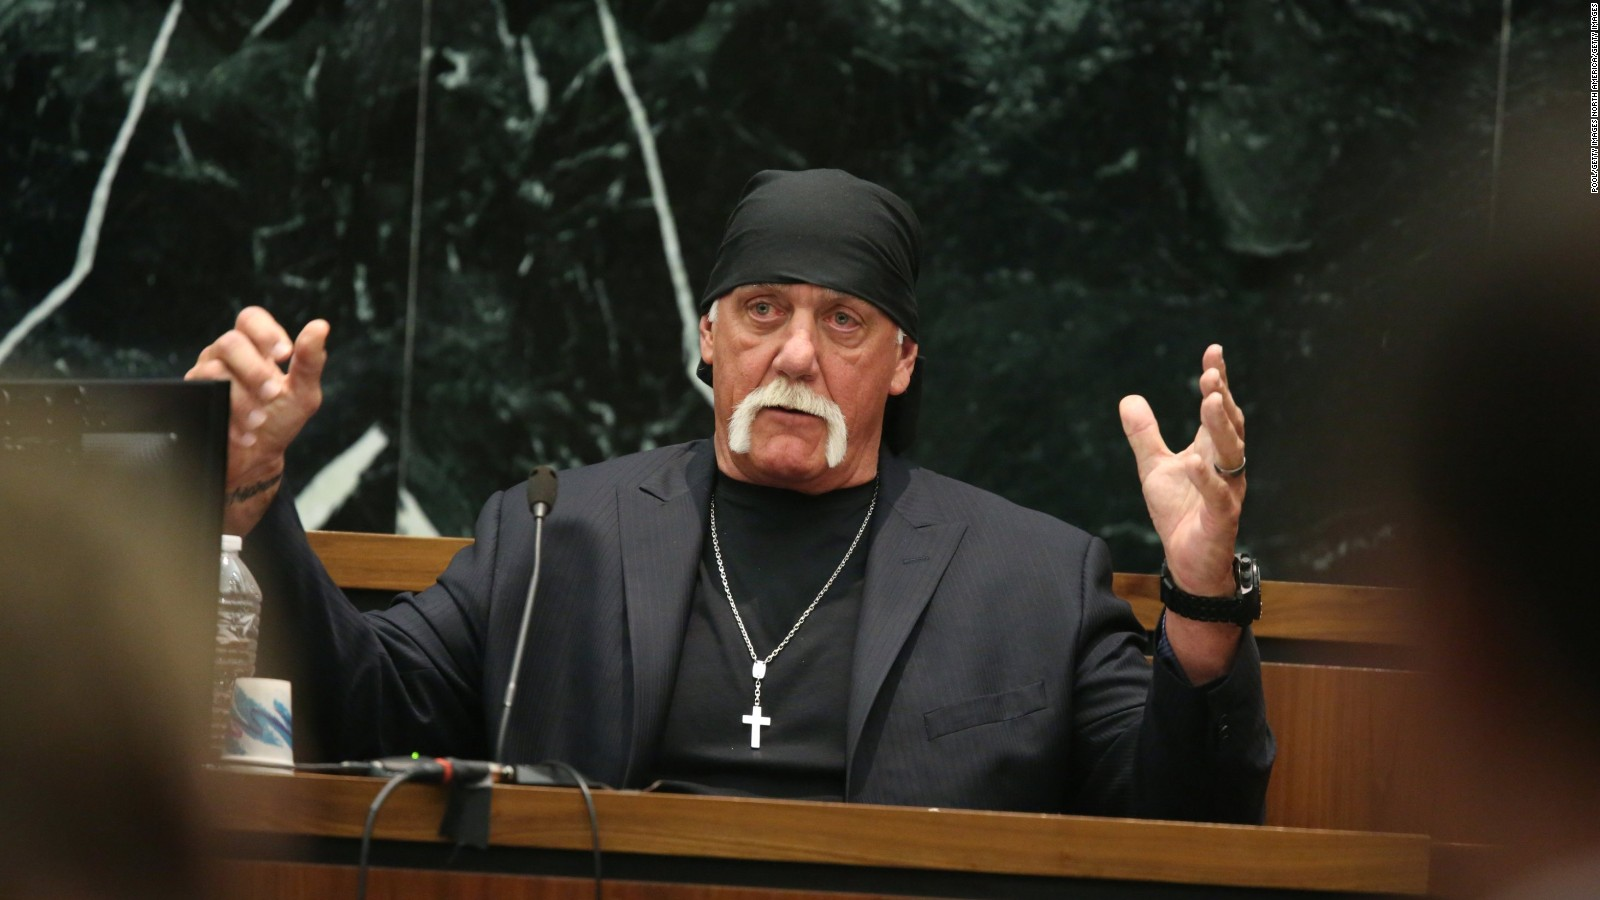 hulk-hogan-at-gawker-trial